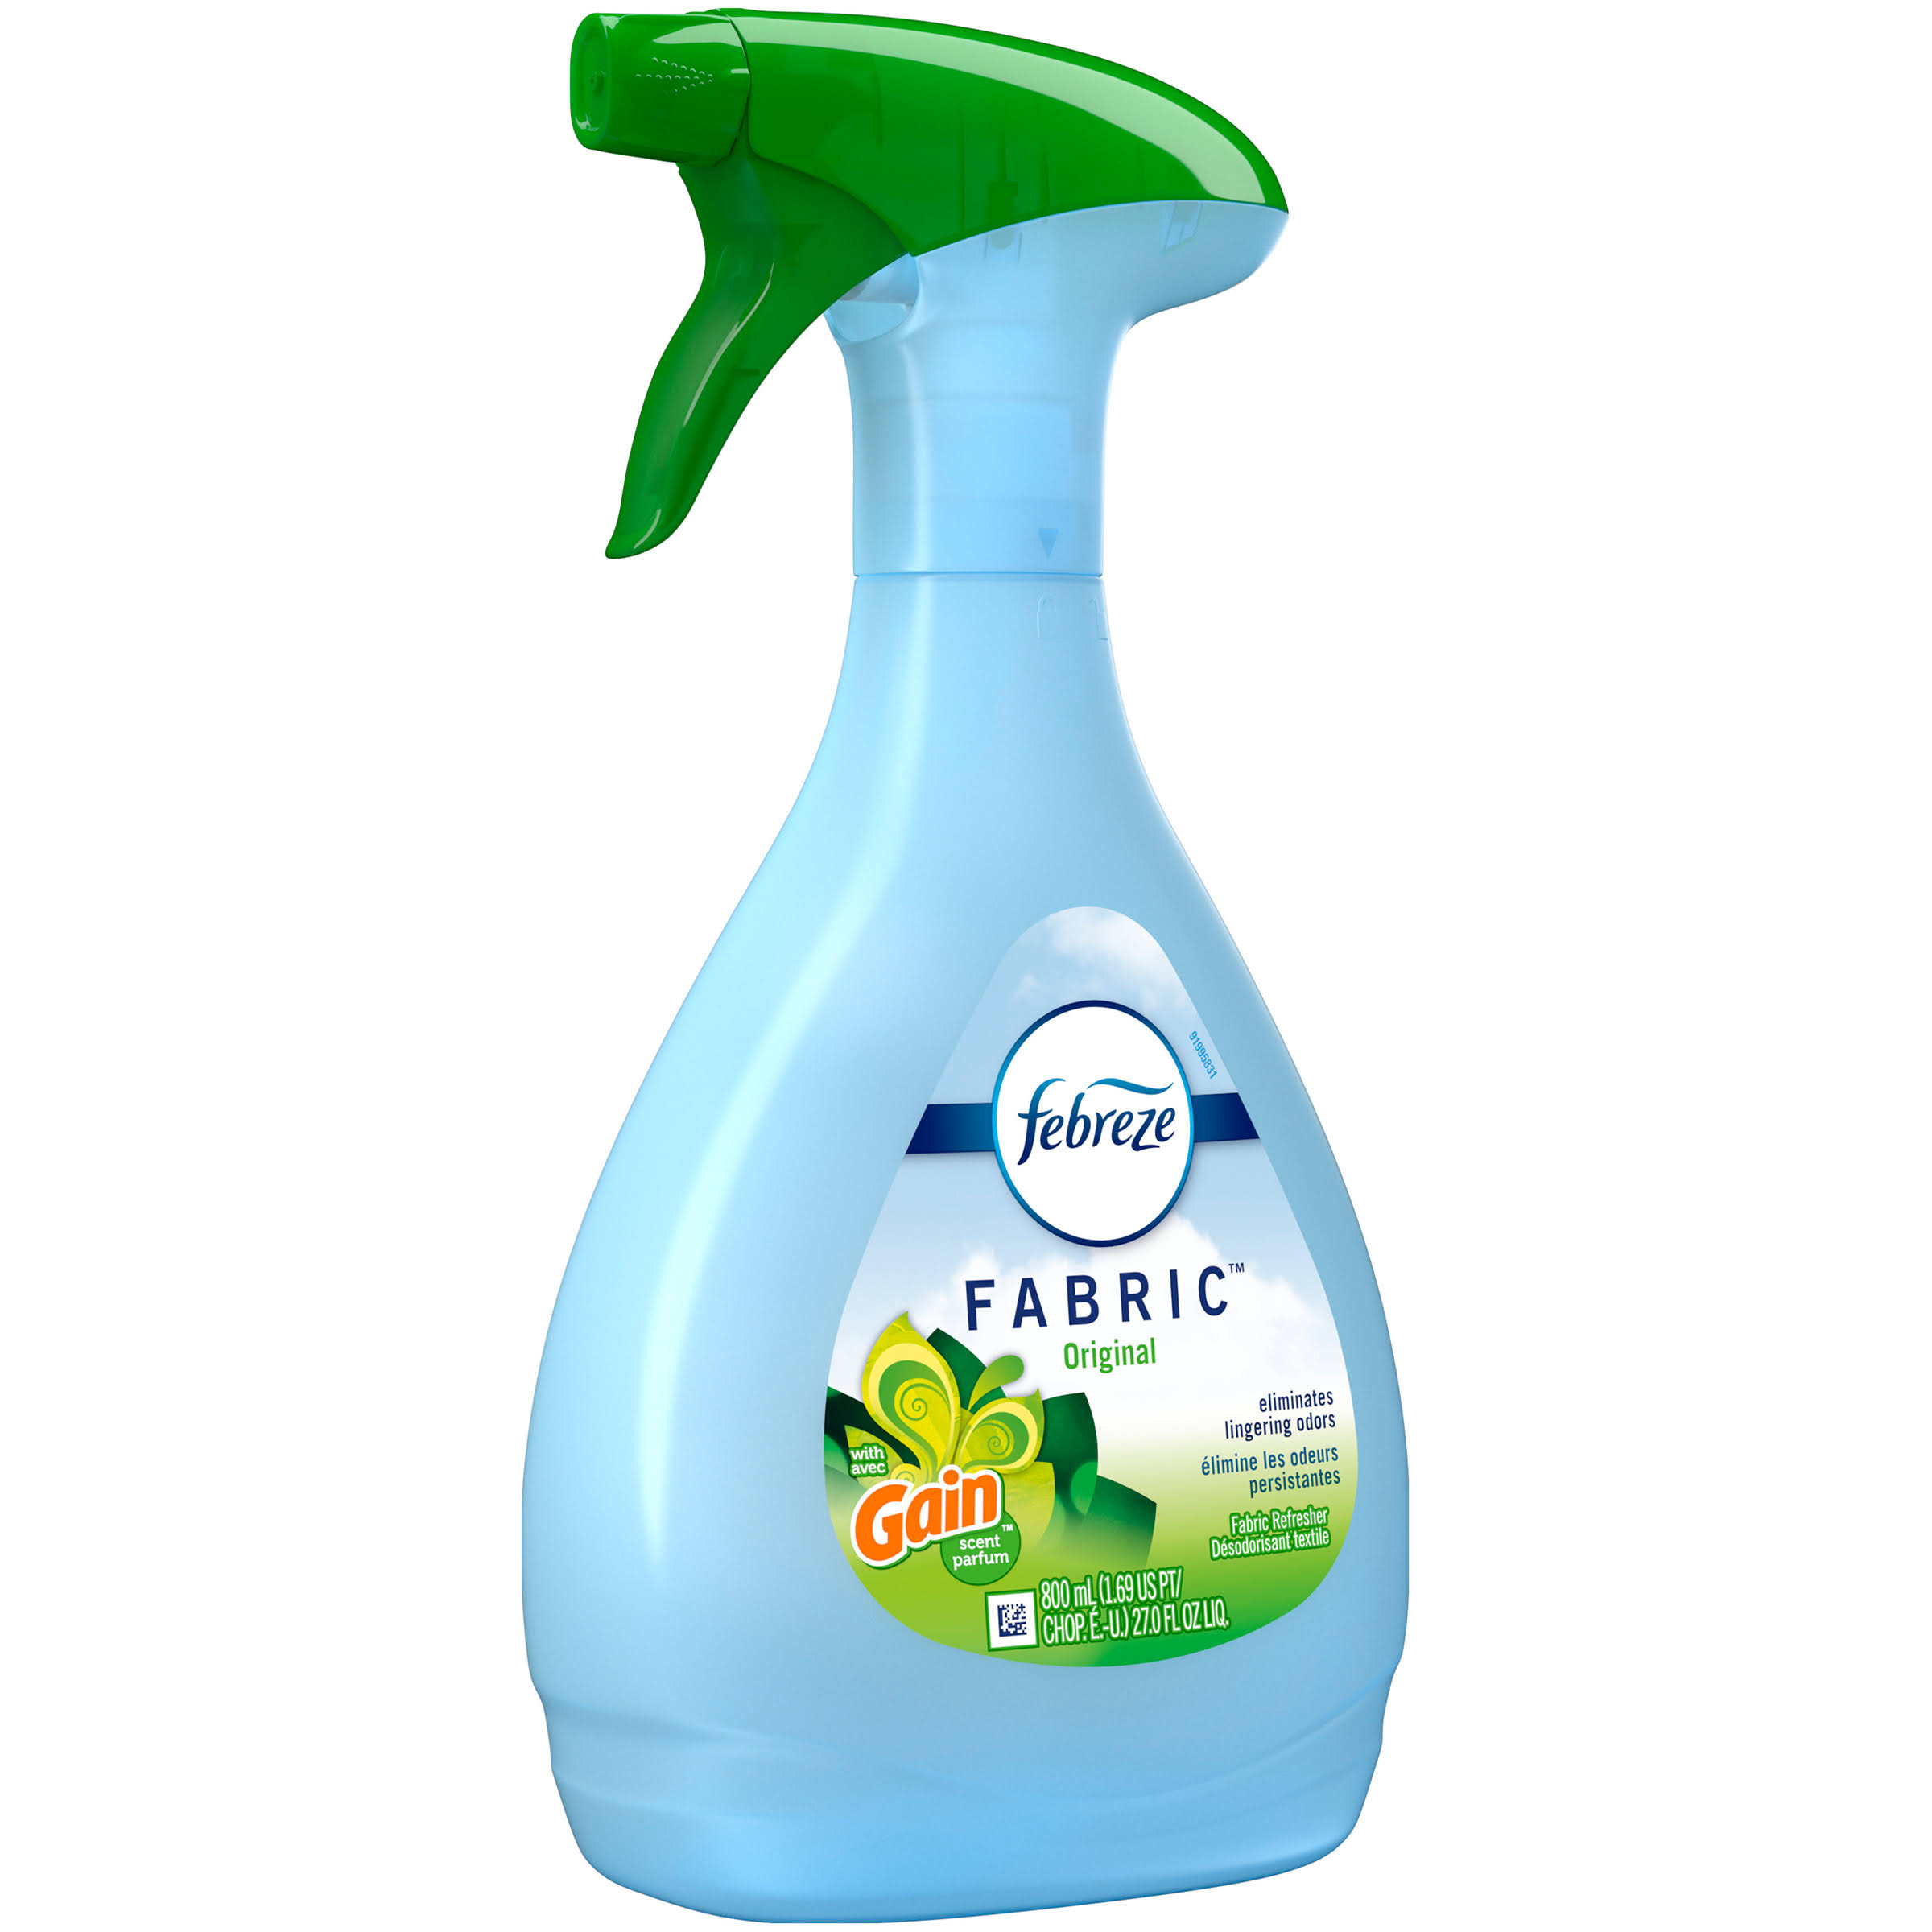 Febreze Fabric Original Fabric Refresher - 27.0oz